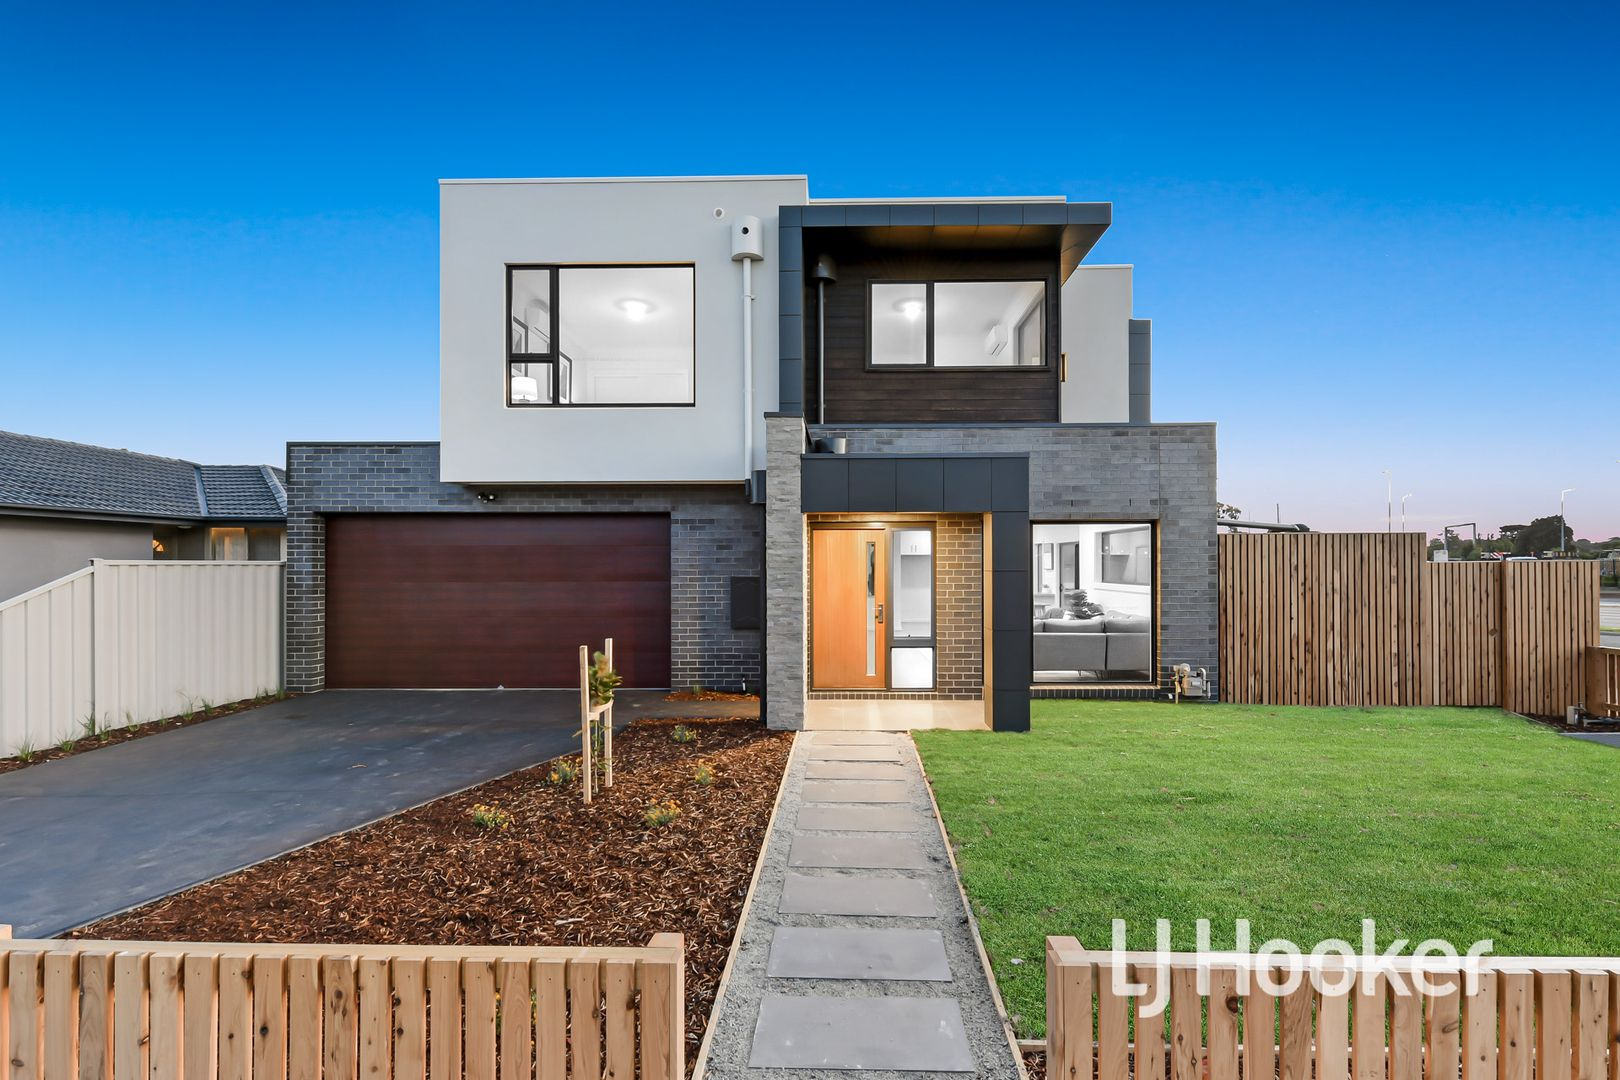 2 Lancaster Avenue, Narre Warren VIC 3805 | Domain